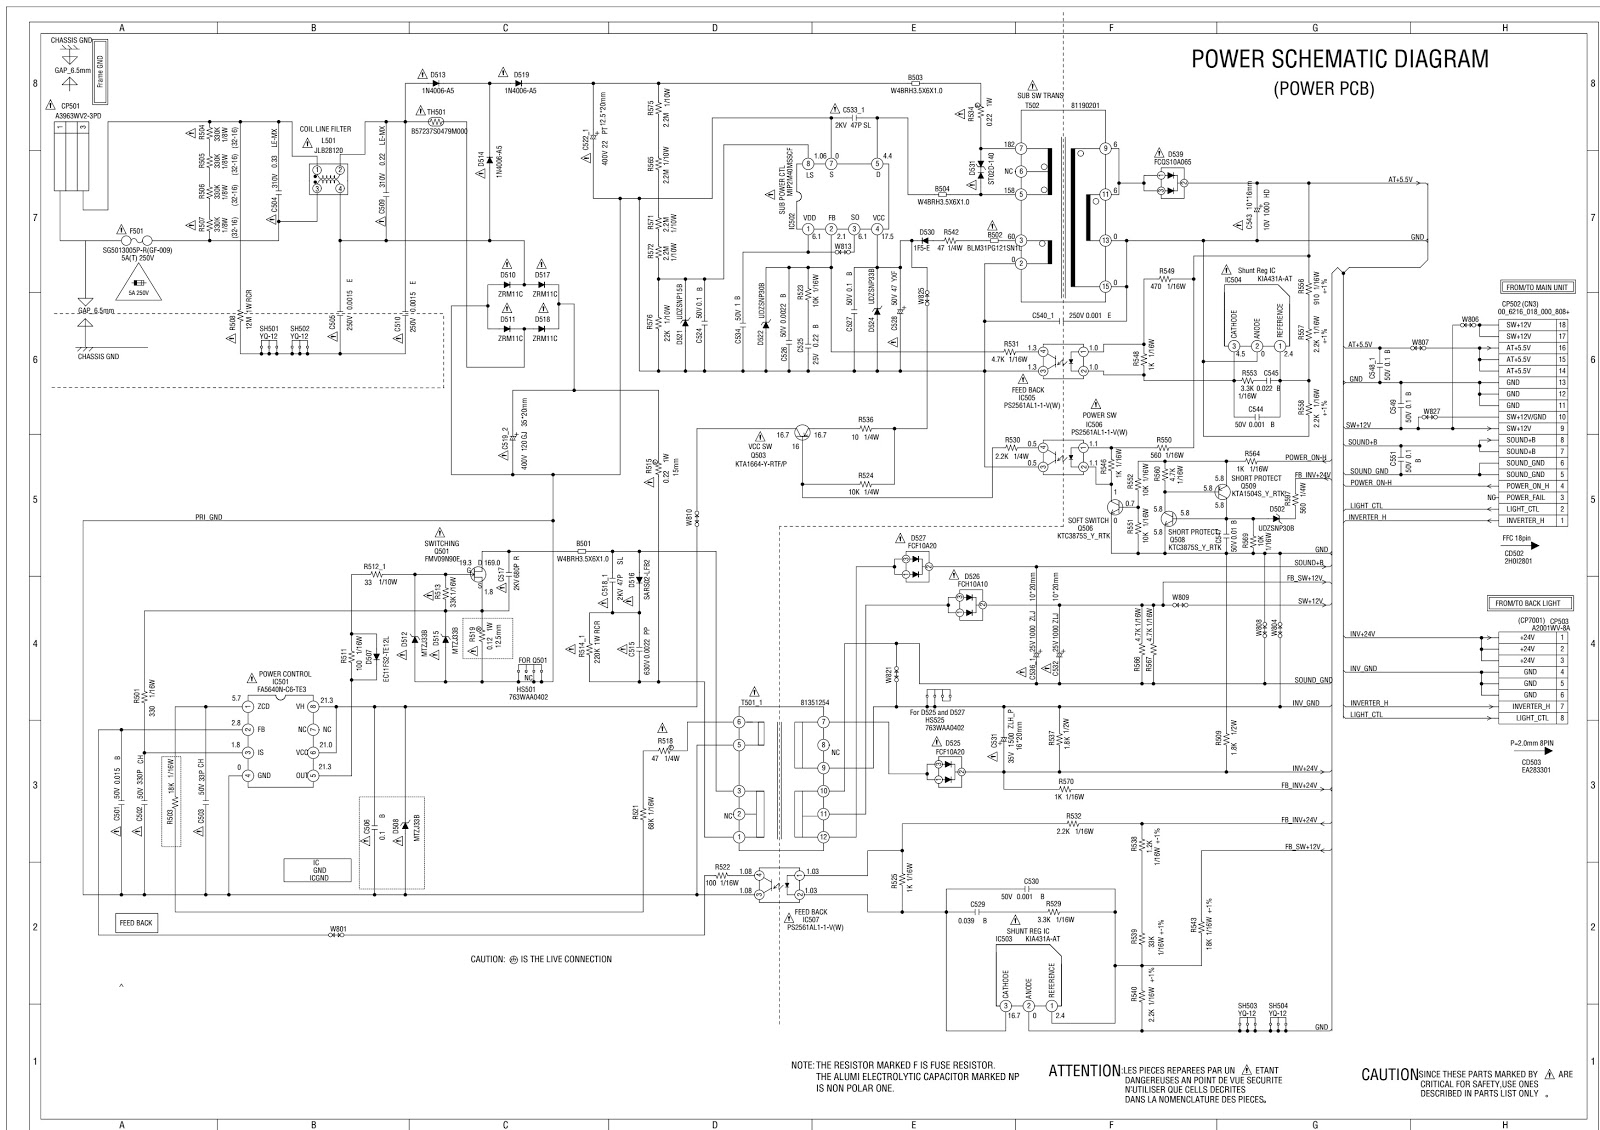 Schematic Diagrams Orion Tv29lb929 29 Inch Lcd Led Tv